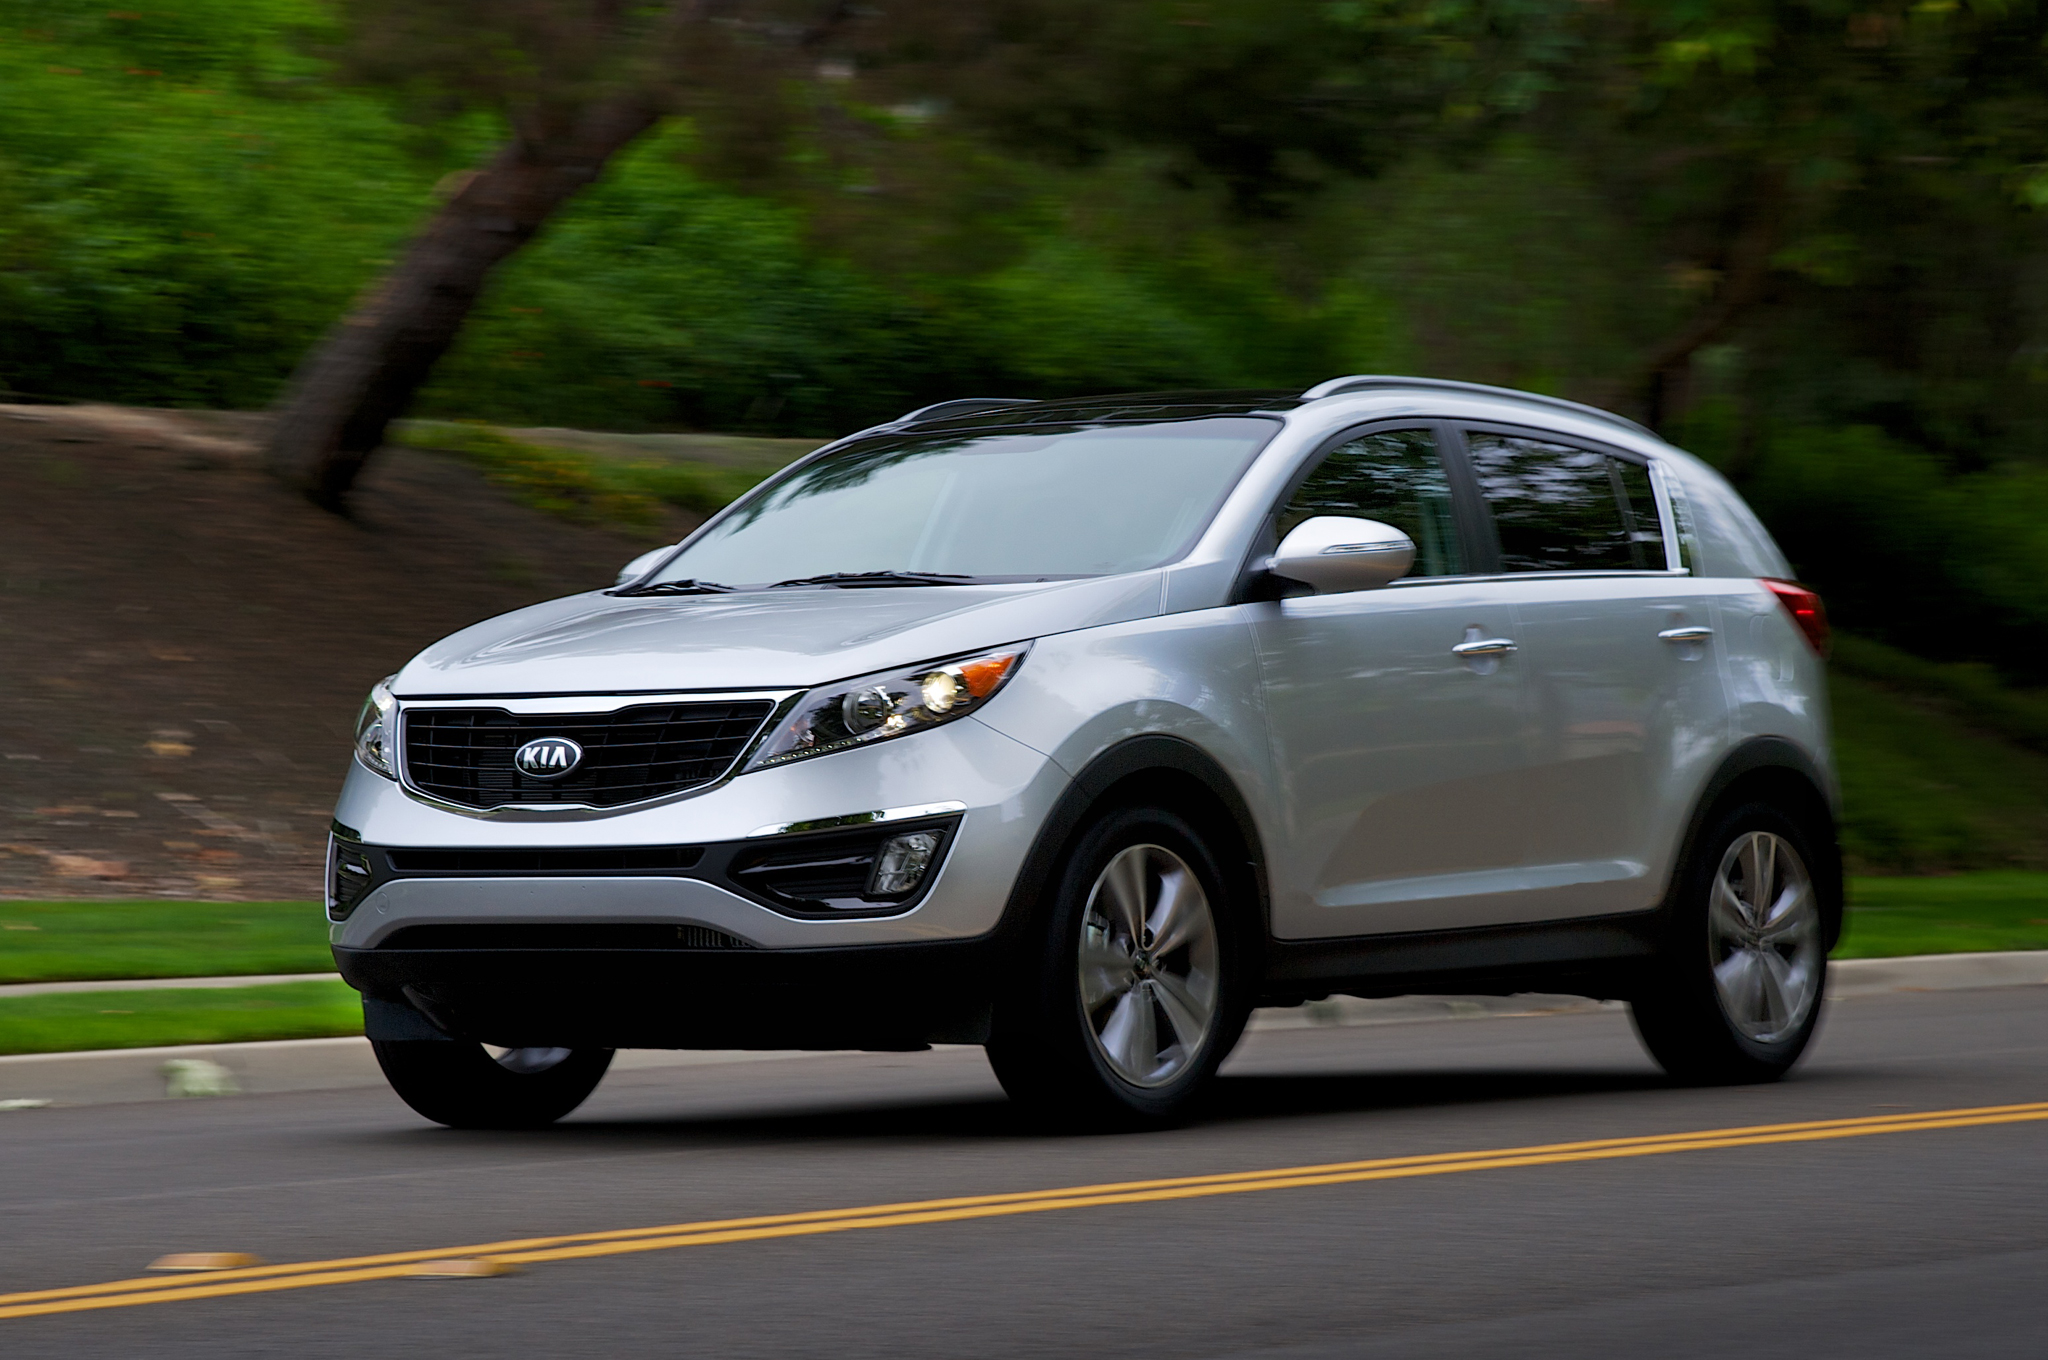 kia changes view detail gdi trend sportage prevnext news gets engine front new truck